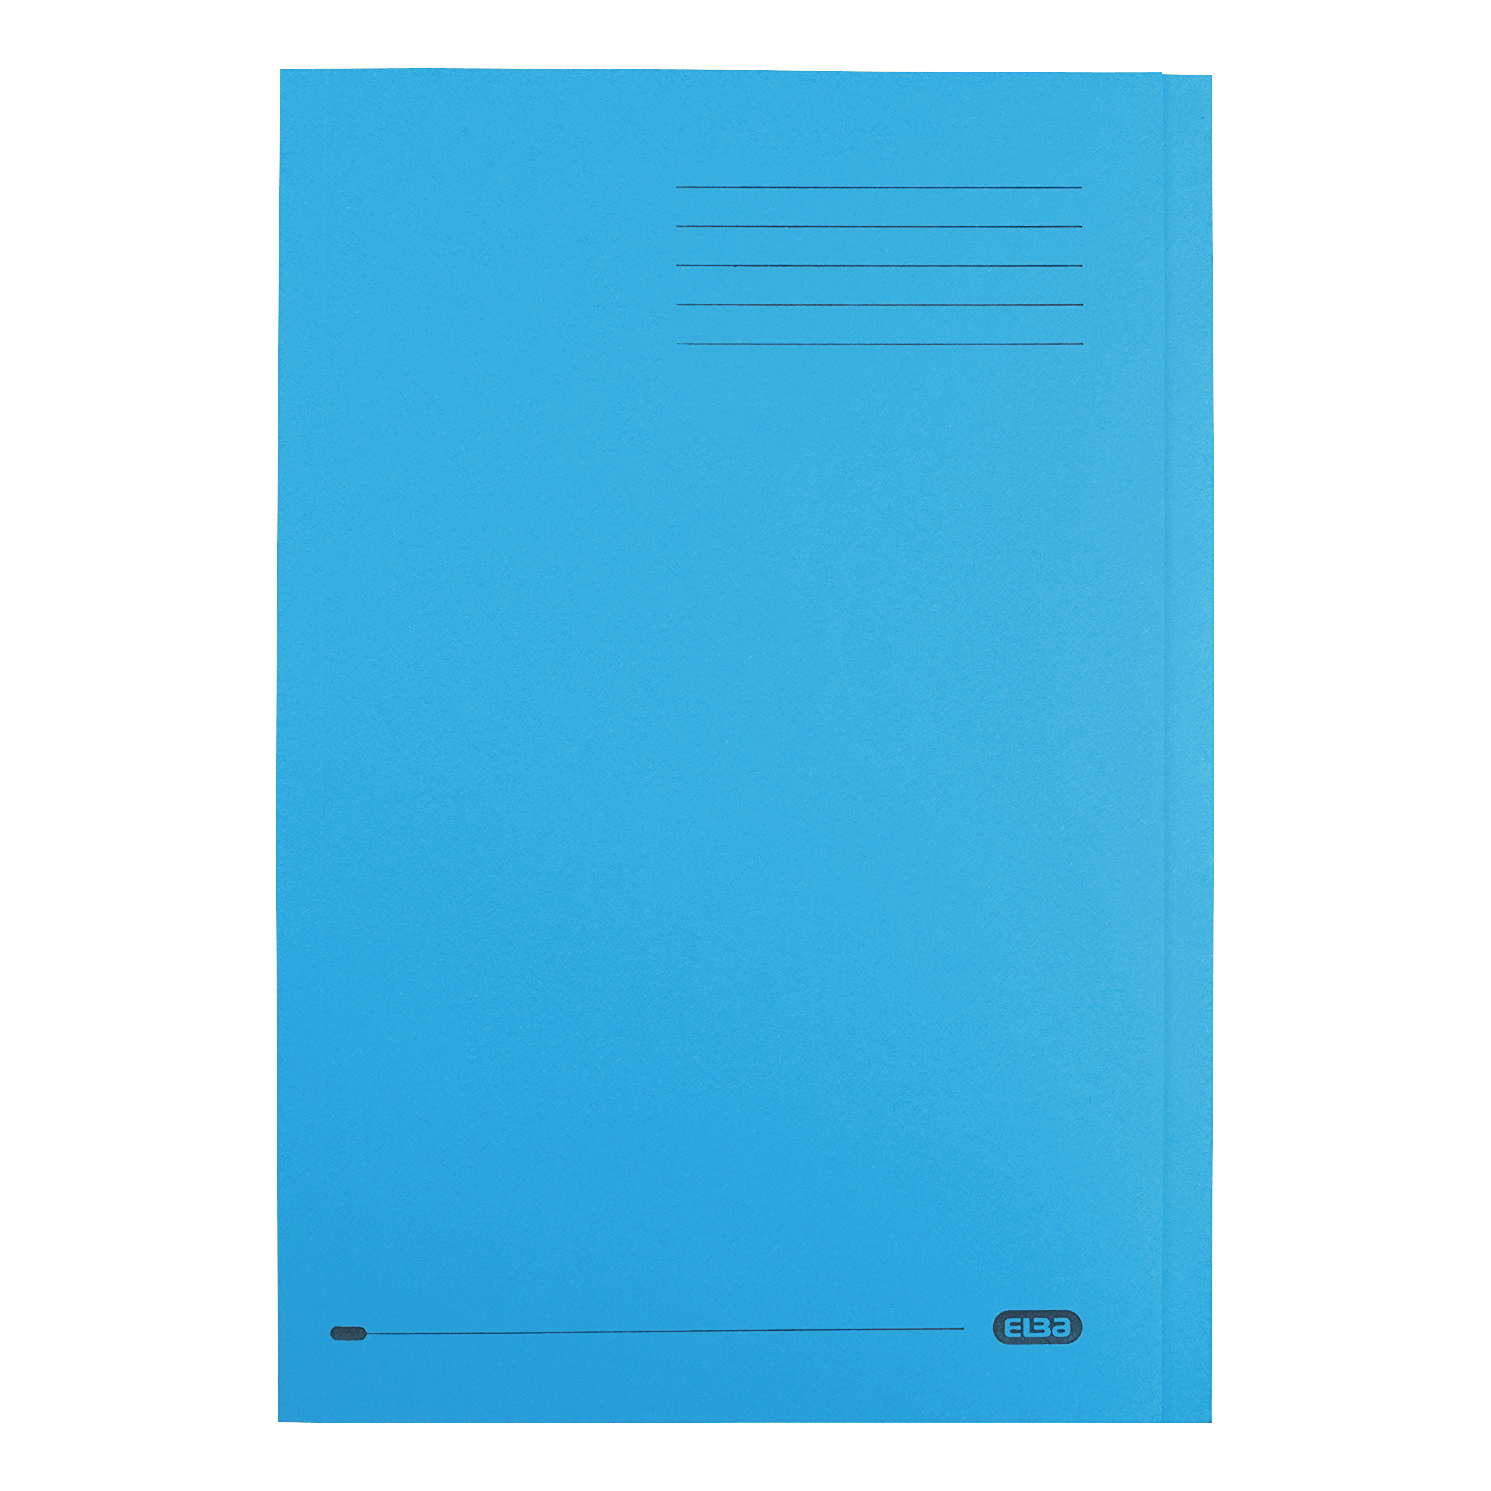 Elba StrongLine Square Cut Folder Heavyweight 320gsm 32mm Foolscap Blue Ref 100090020 [Pack 50]